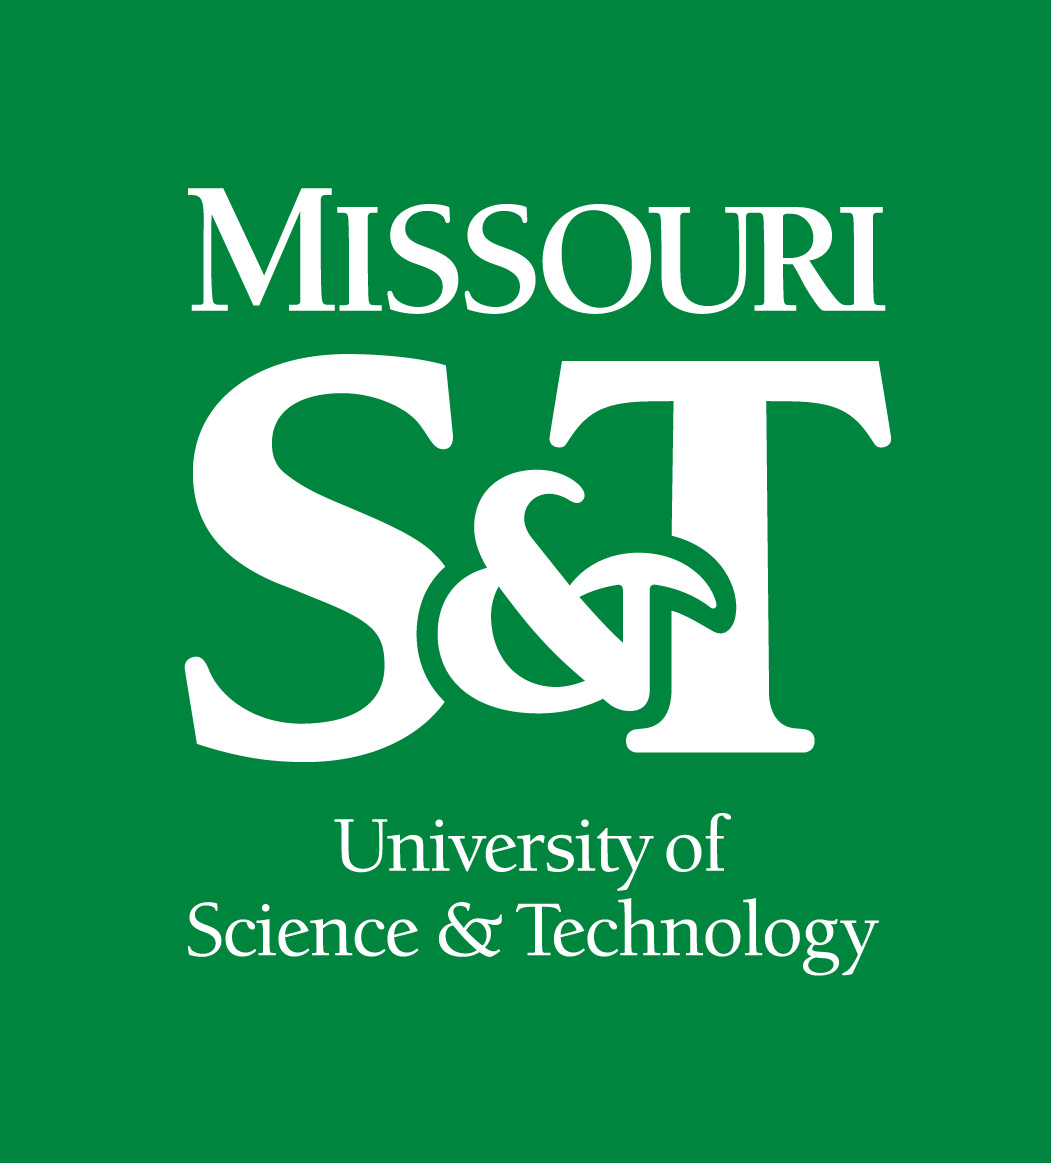 Group logo of Missouri University of Science & Technology